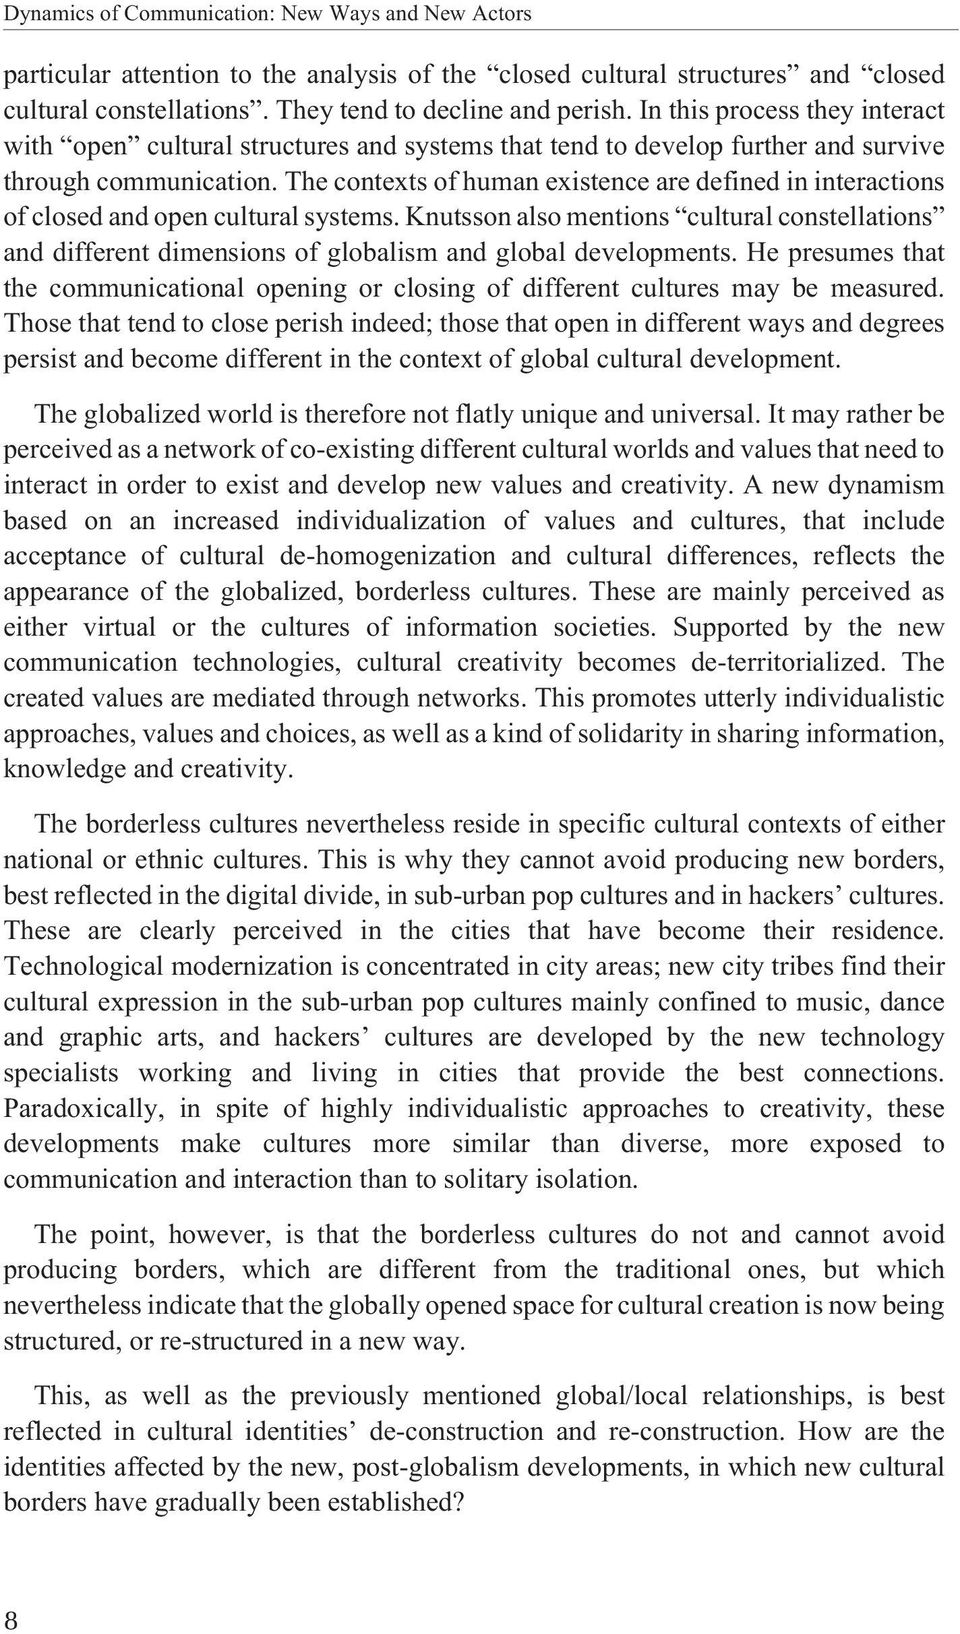 The contexts of human existence are defined in interactions of closed and open cultural systems.